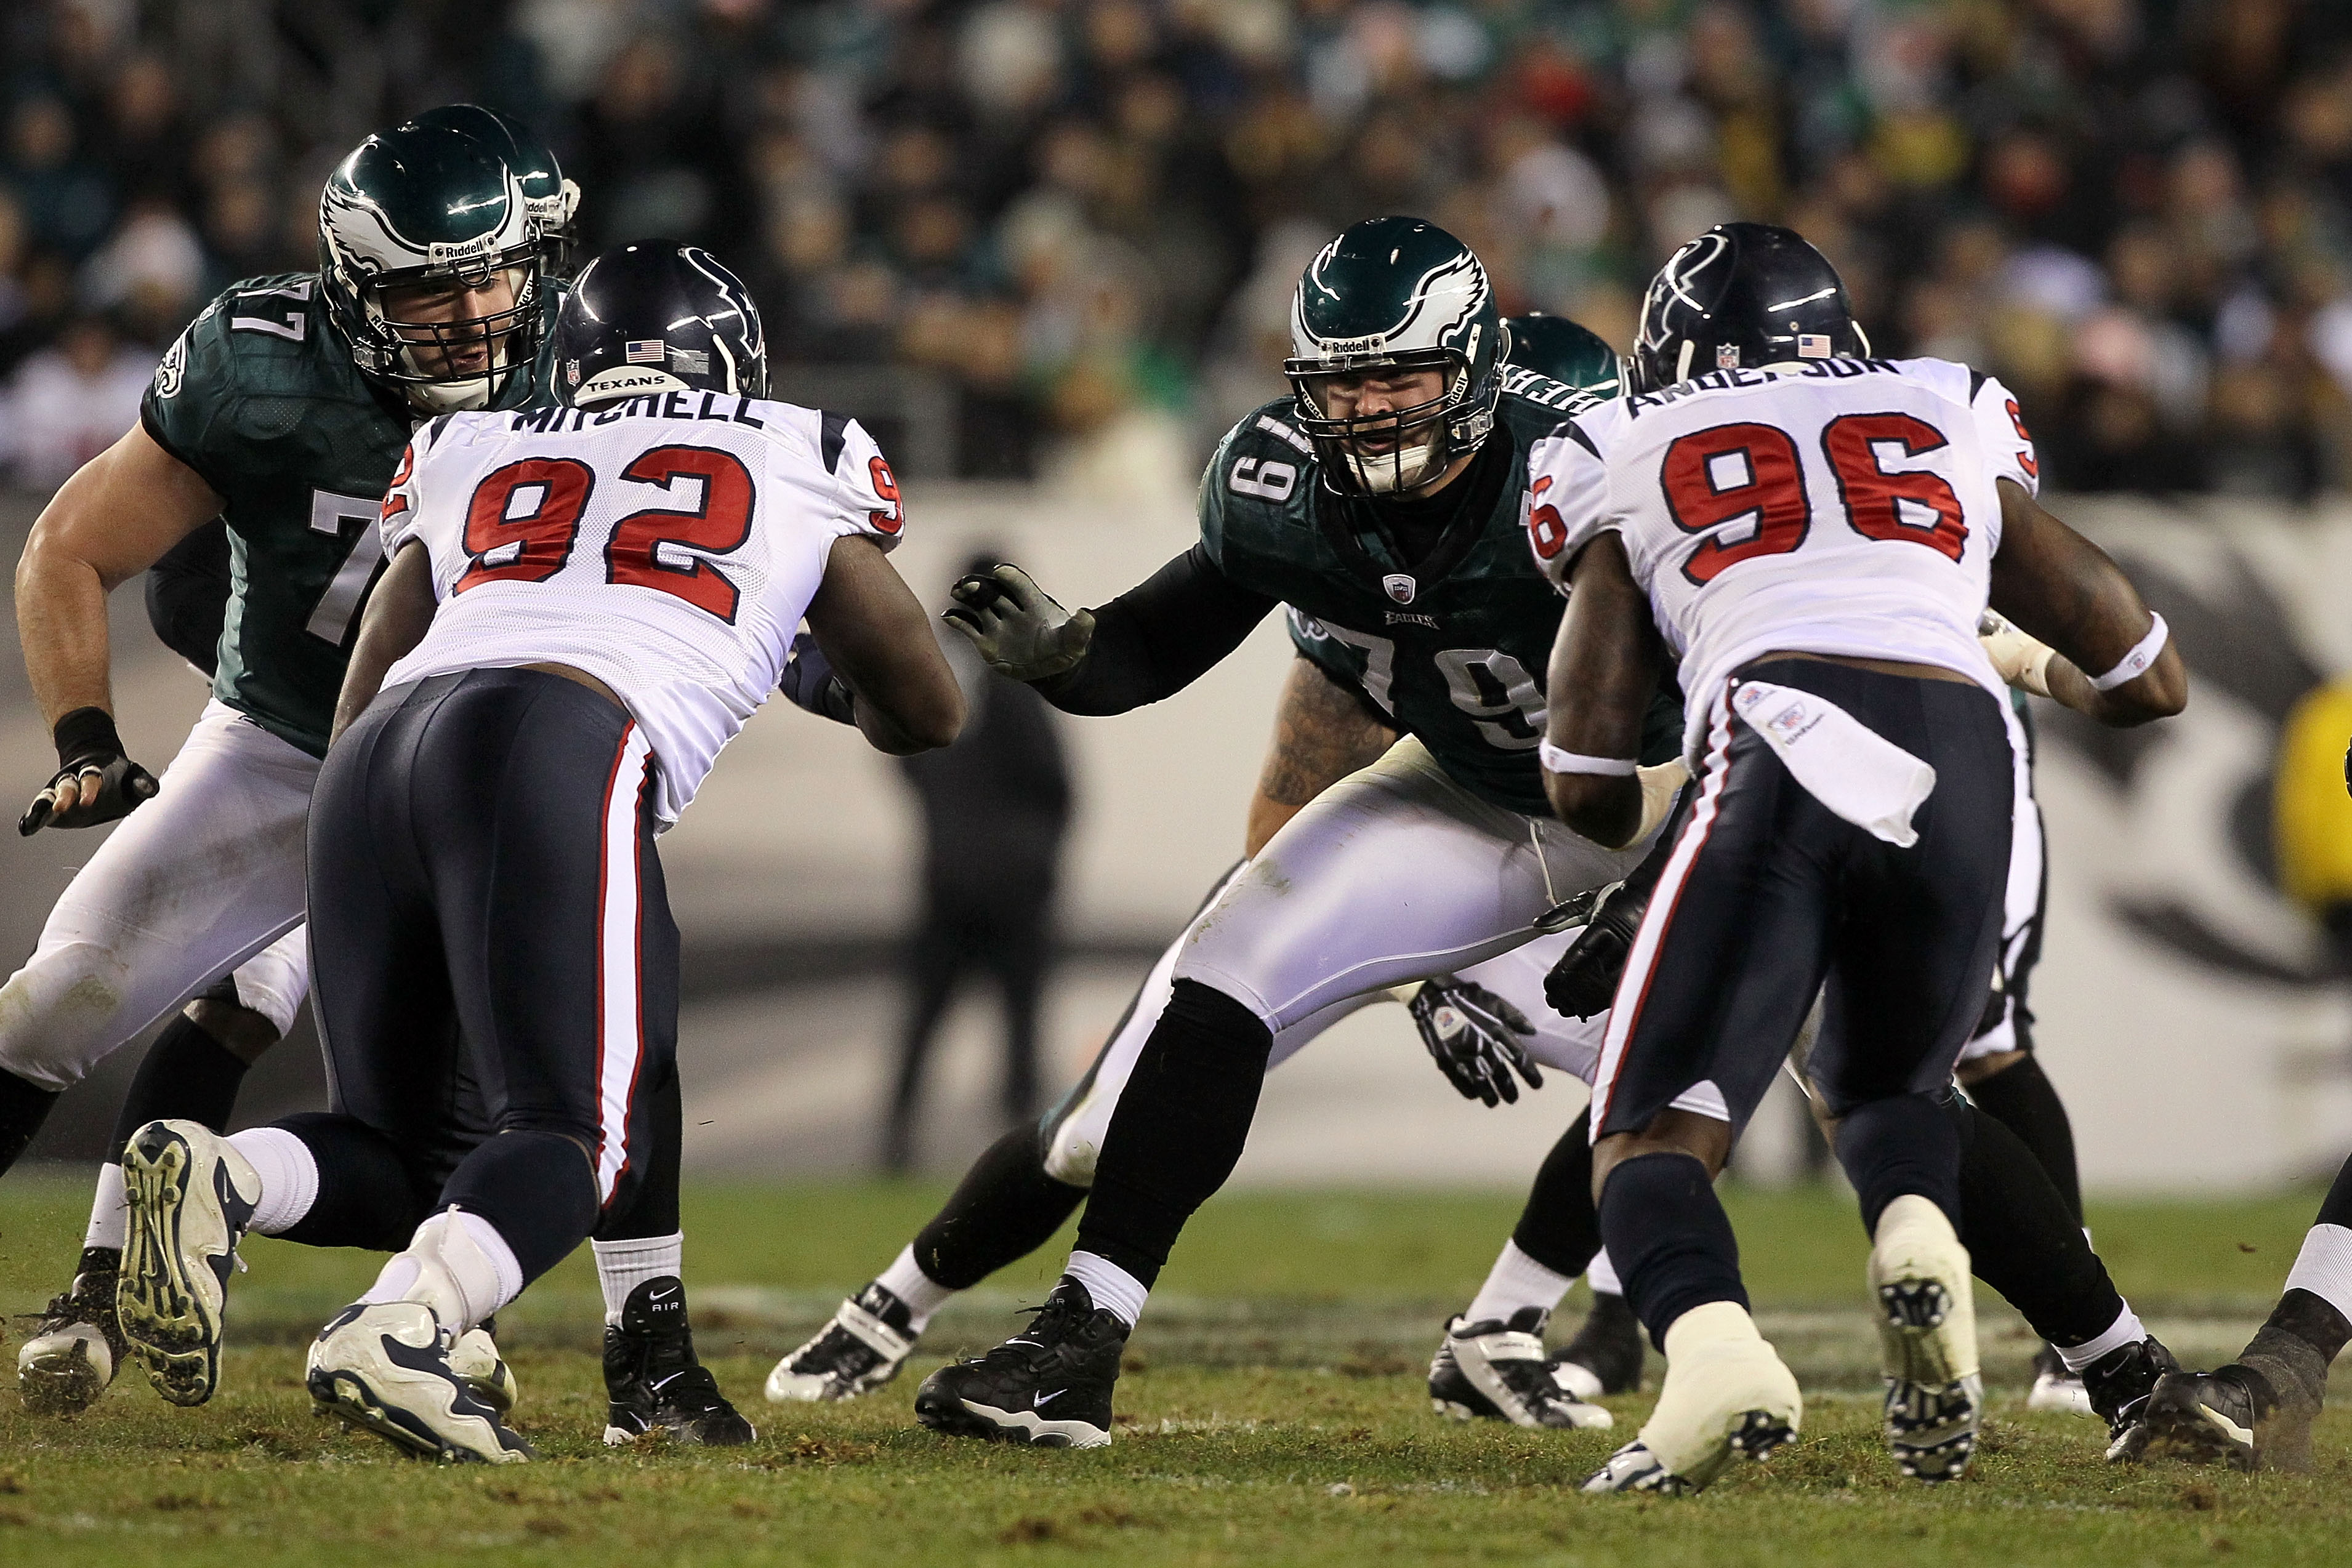 PHILADELPHIA, PA - DECEMBER 02:  Offensive guard Todd Herremans #79 of the Philadelphia Eagles pass blocks against the Houston Texans at Lincoln Financial Field on December 2, 2010 in Philadelphia, Pennsylvania.  (Photo by Jim McIsaac/Getty Images)